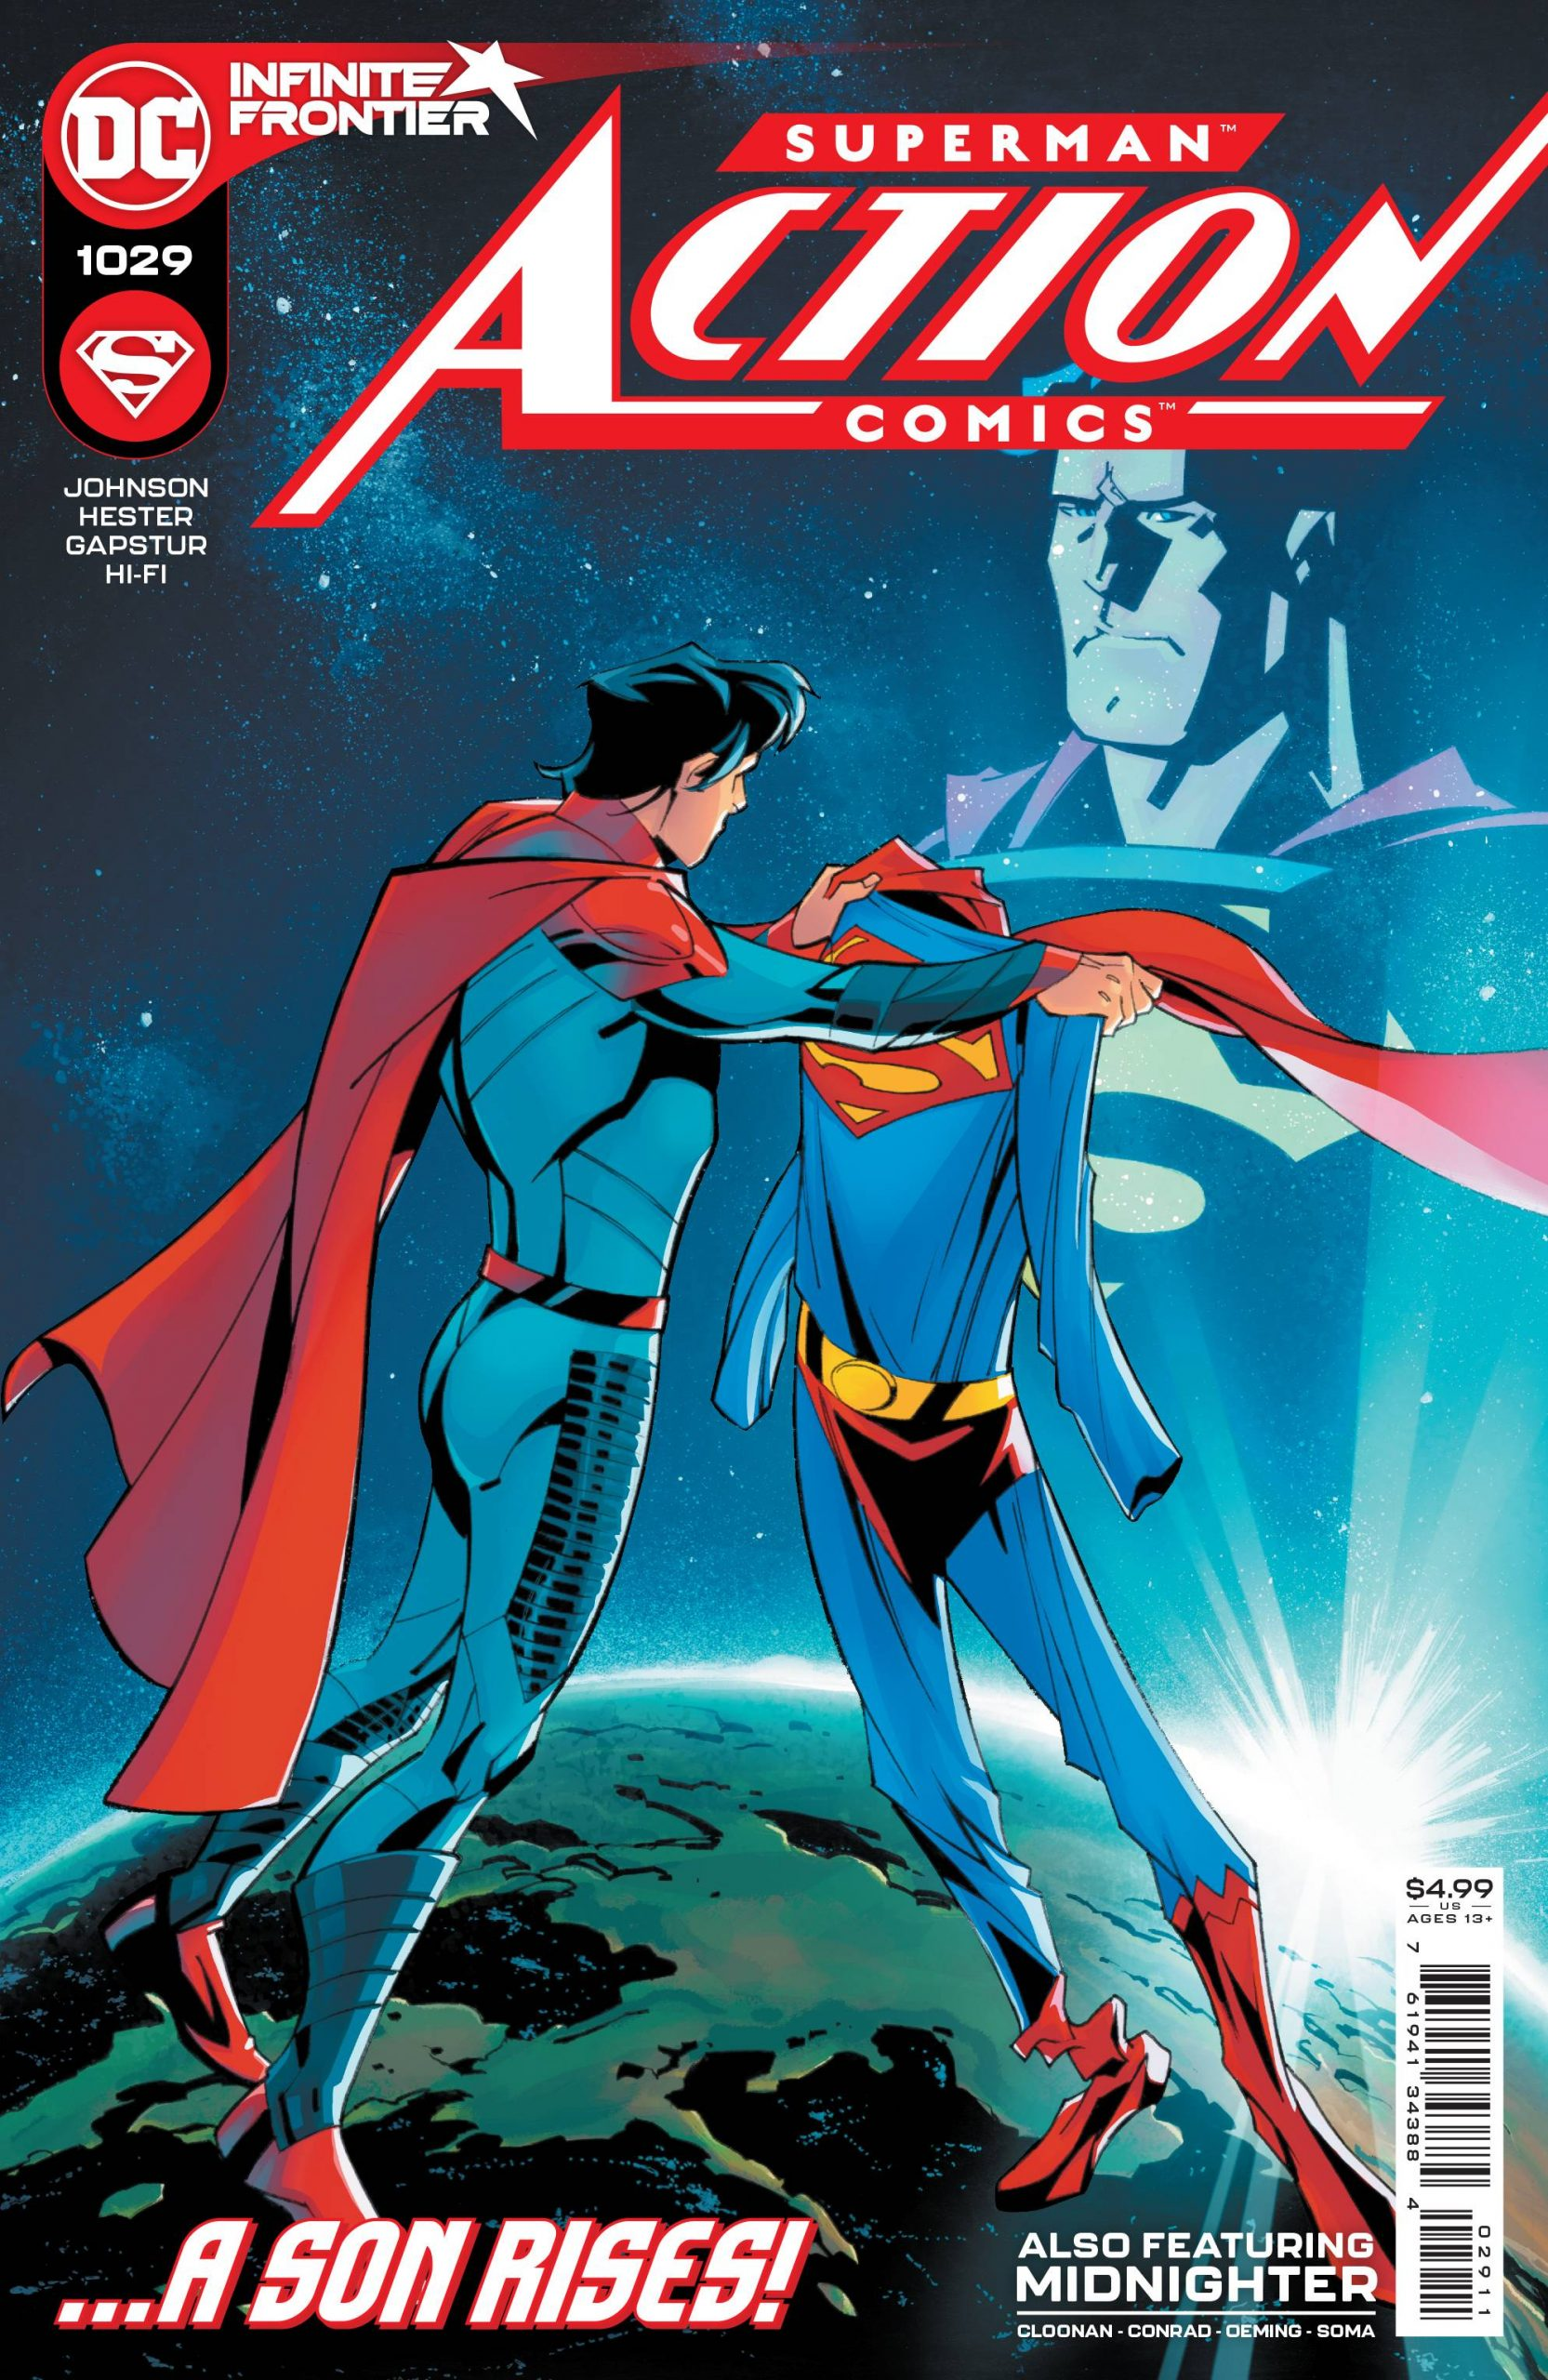 Action-Comics-1029-spoilers-0-1-scaled-1 Action-Comics-1029-spoilers-0-1-scaled-1